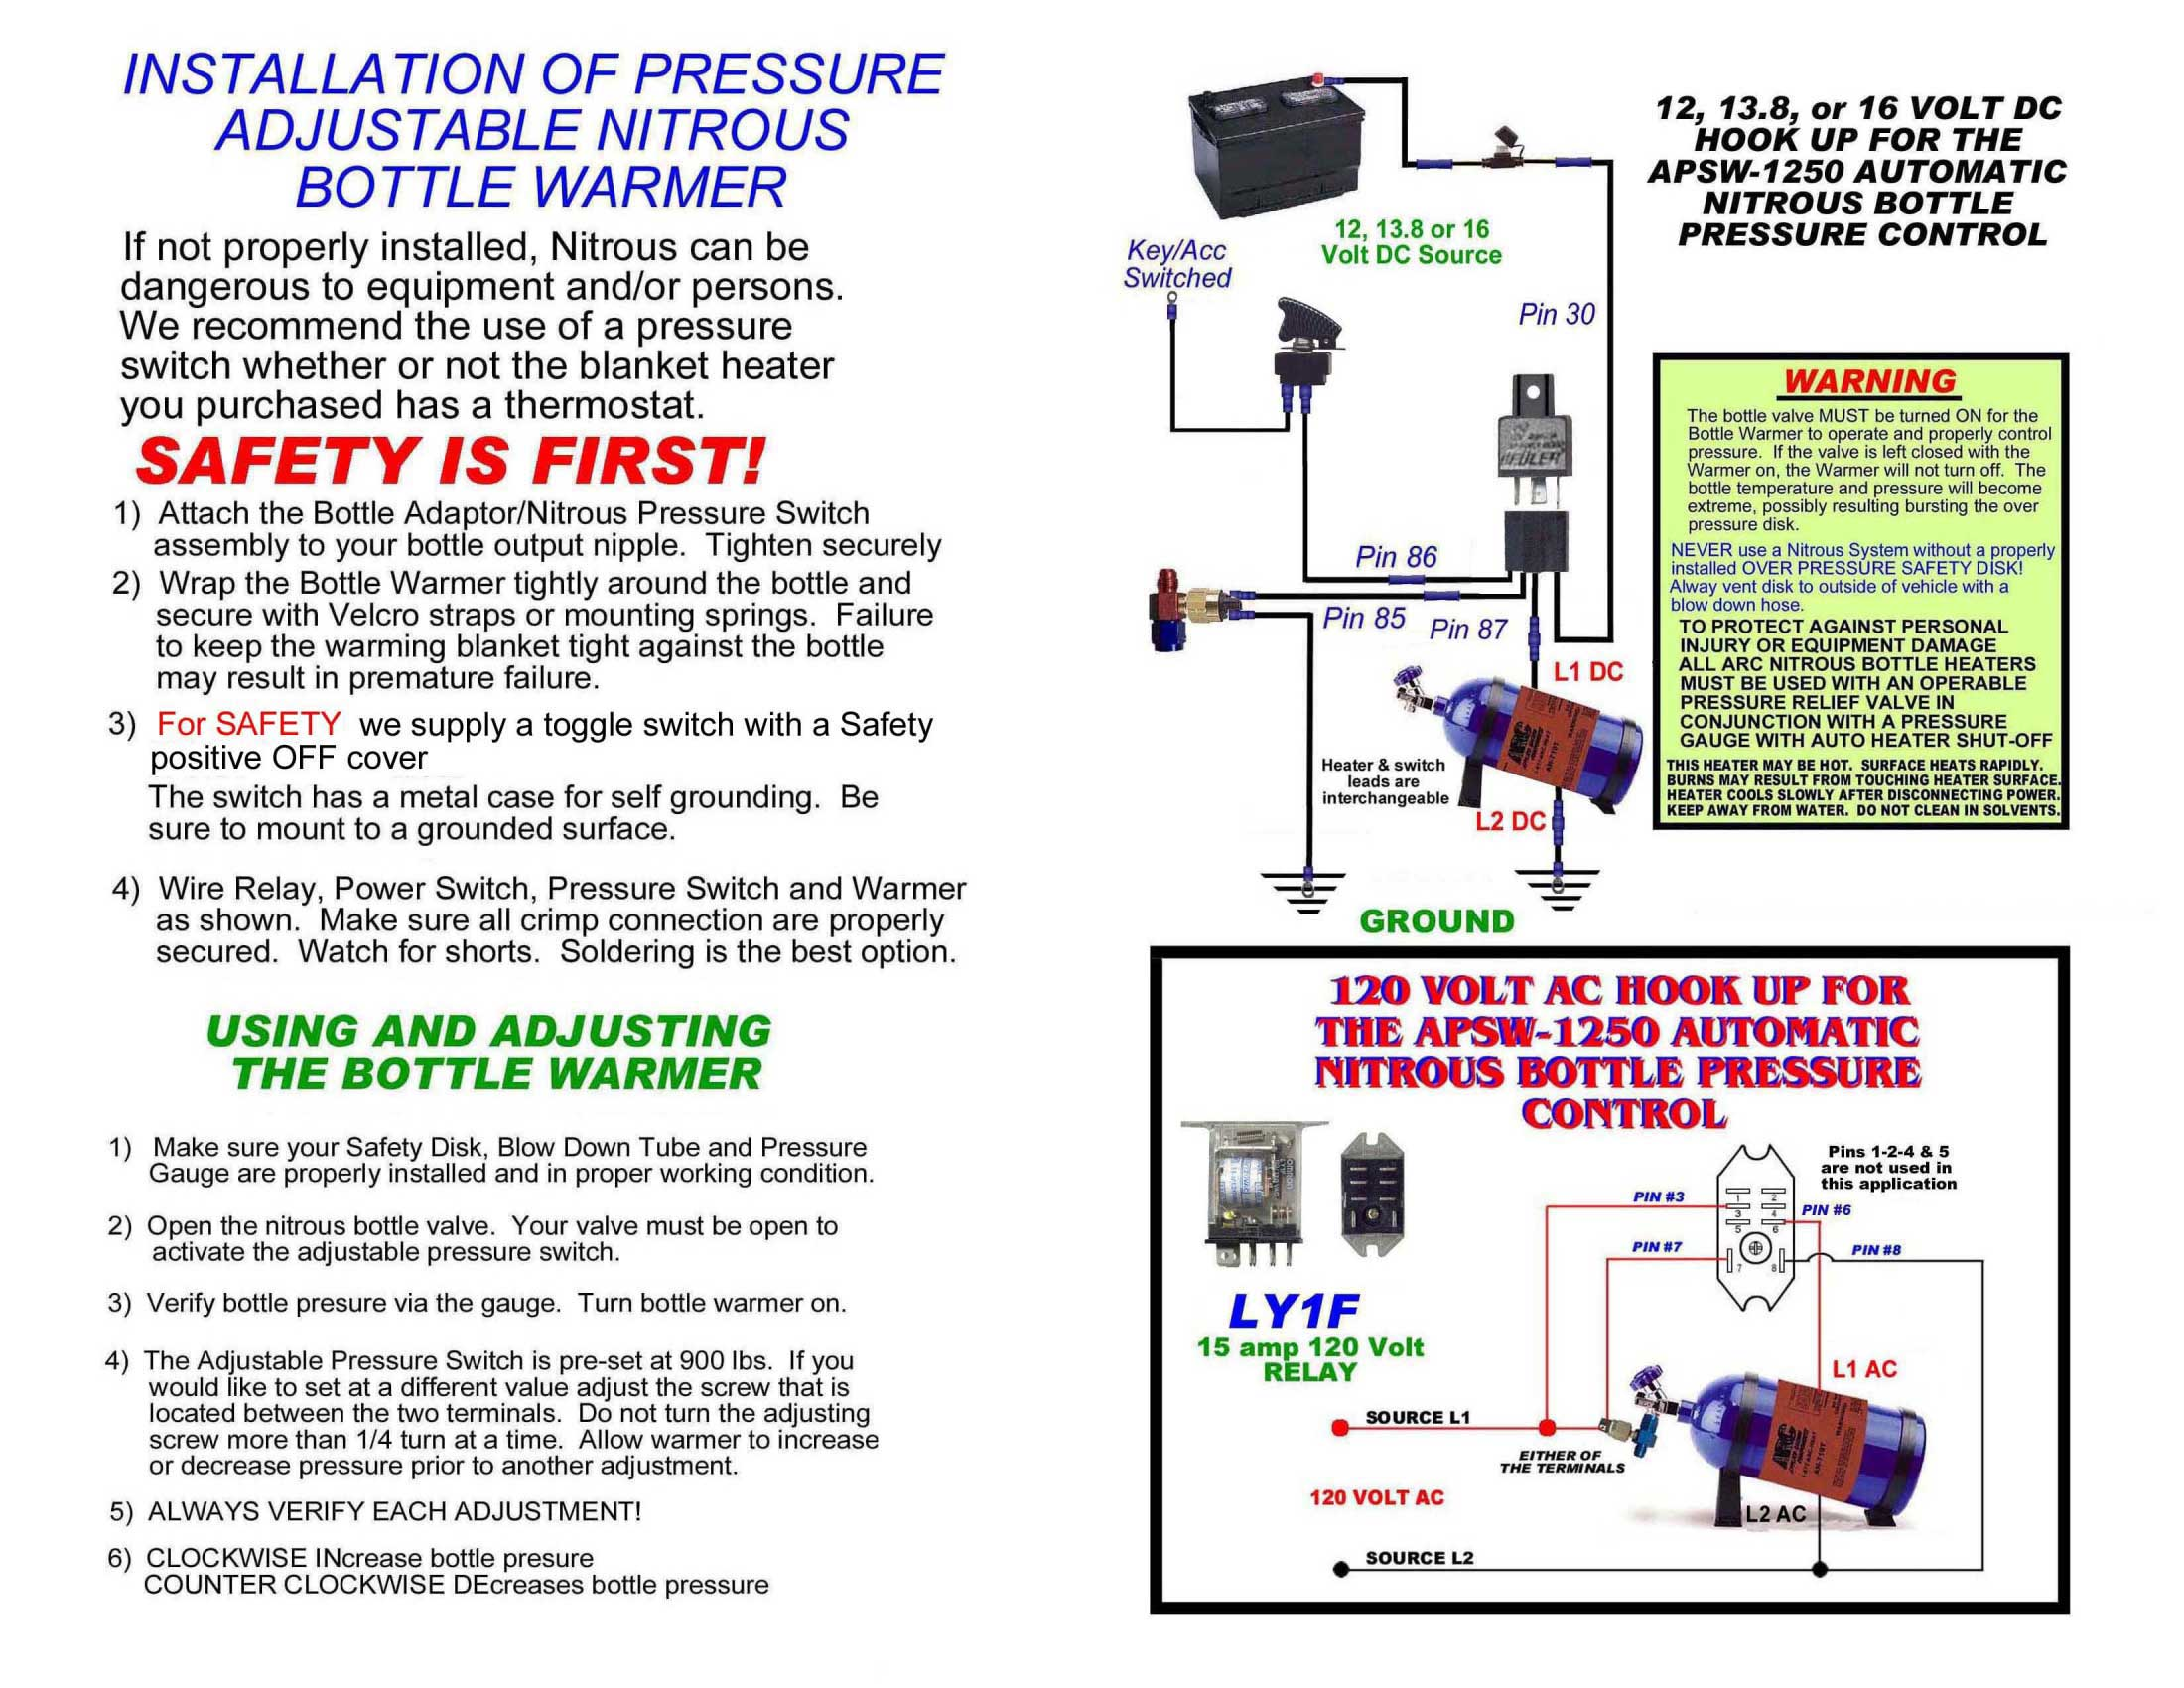 Arc Wiring Diagram 3100 Another Blog About How To Wire 2 4ohm Subs Ohms Mps Racing Instructions